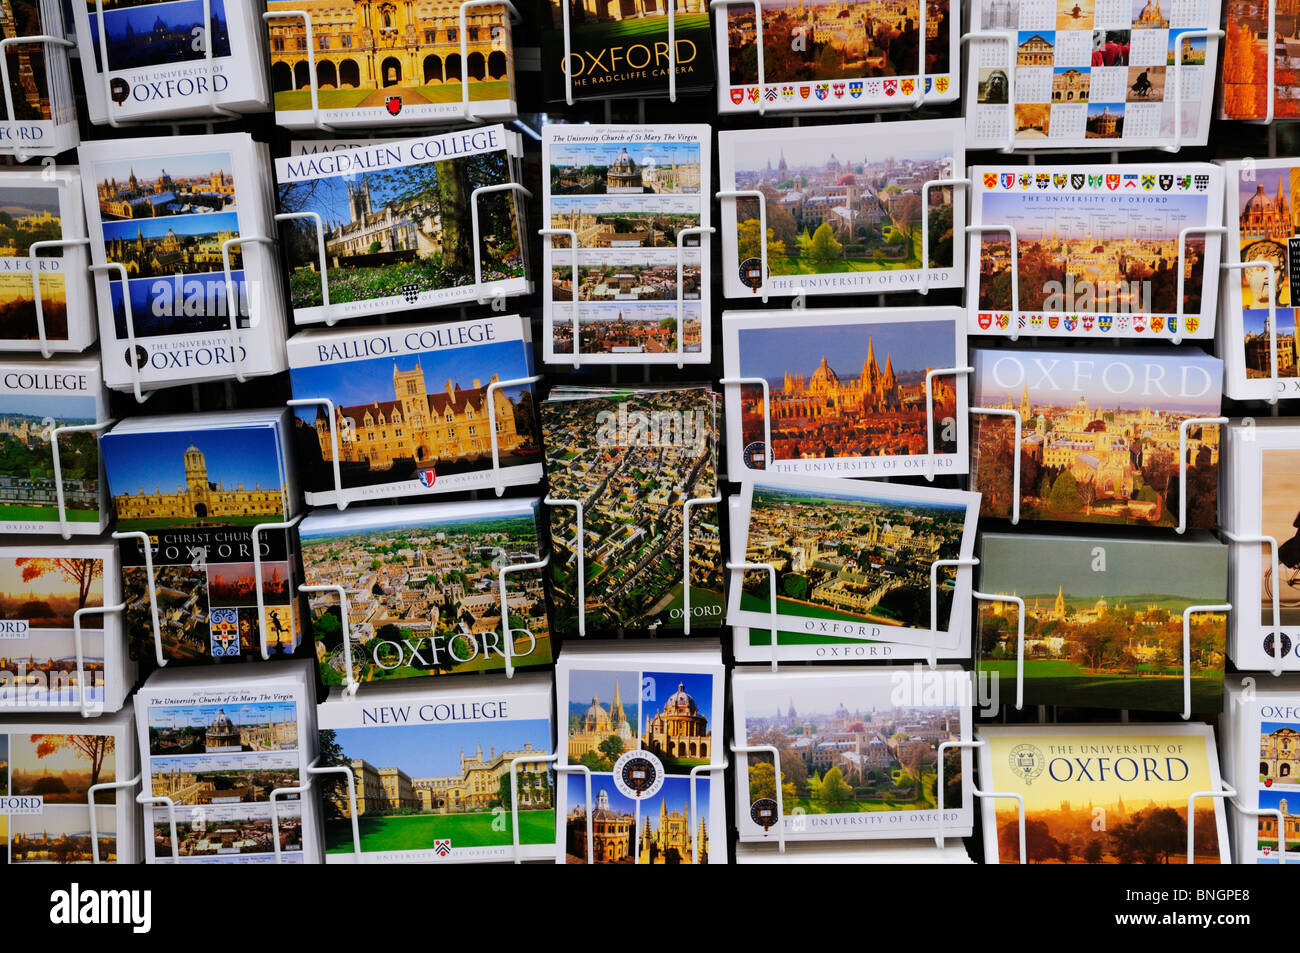 A Rack of Postcards of Oxford Colleges, Oxford, England, UK - Stock Image